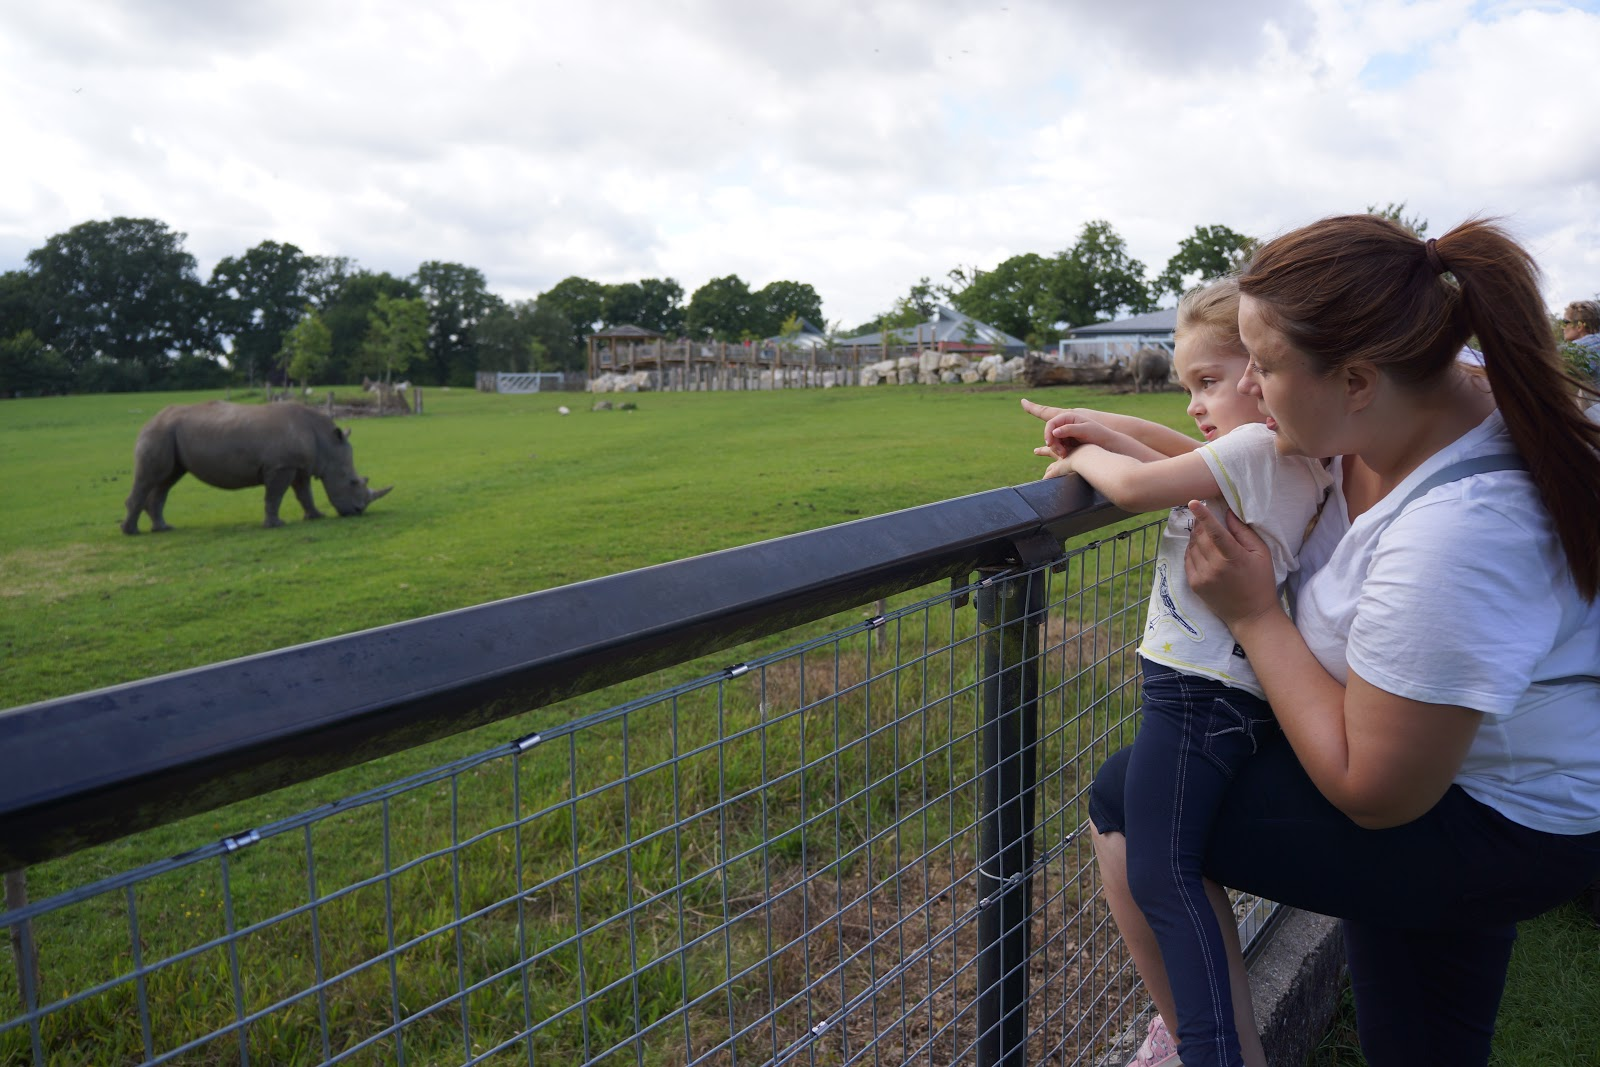 mum and daughter pointing at rhinos at marwell zoo